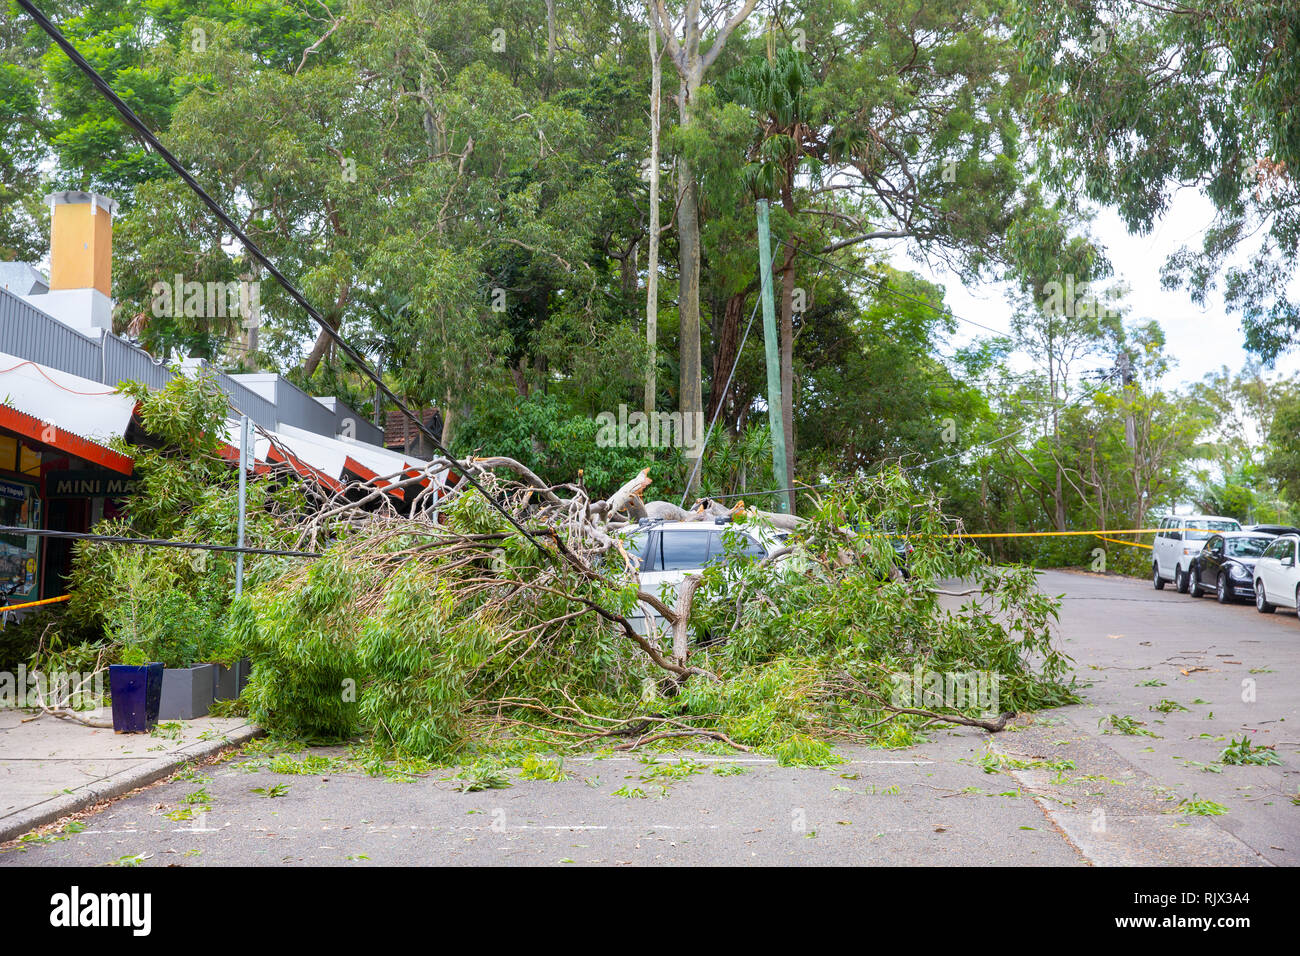 Cars crushed by fallen tree on Sydney Pittwater area, Sydney,Australia Stock Photo